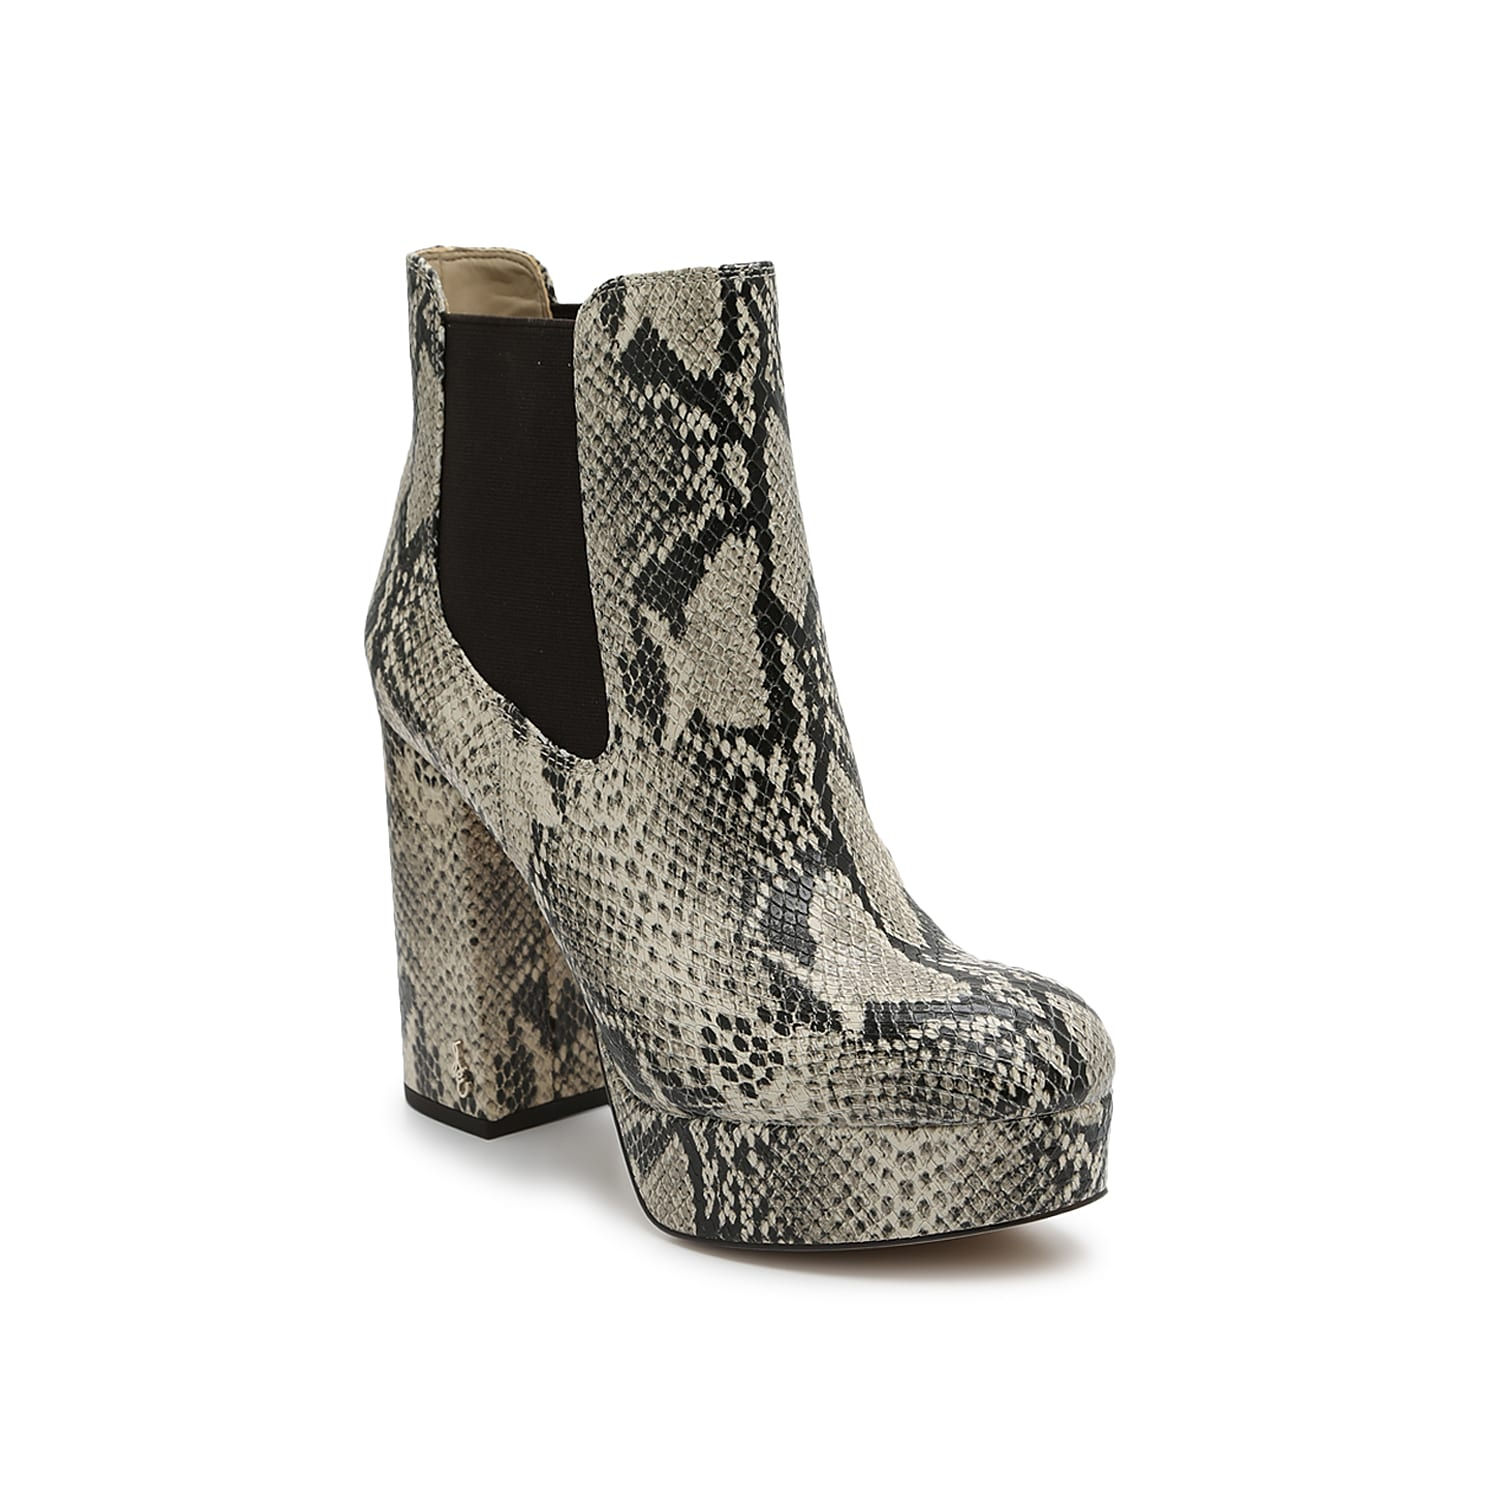 Remix your ankle bootie collection with the Abella platform boot from Sam Edelman. This Chelsea boot features an extra chunky block heel, integrated platform, and all-over reptile embossing in a monotone neutral that\\\'s easy to match.